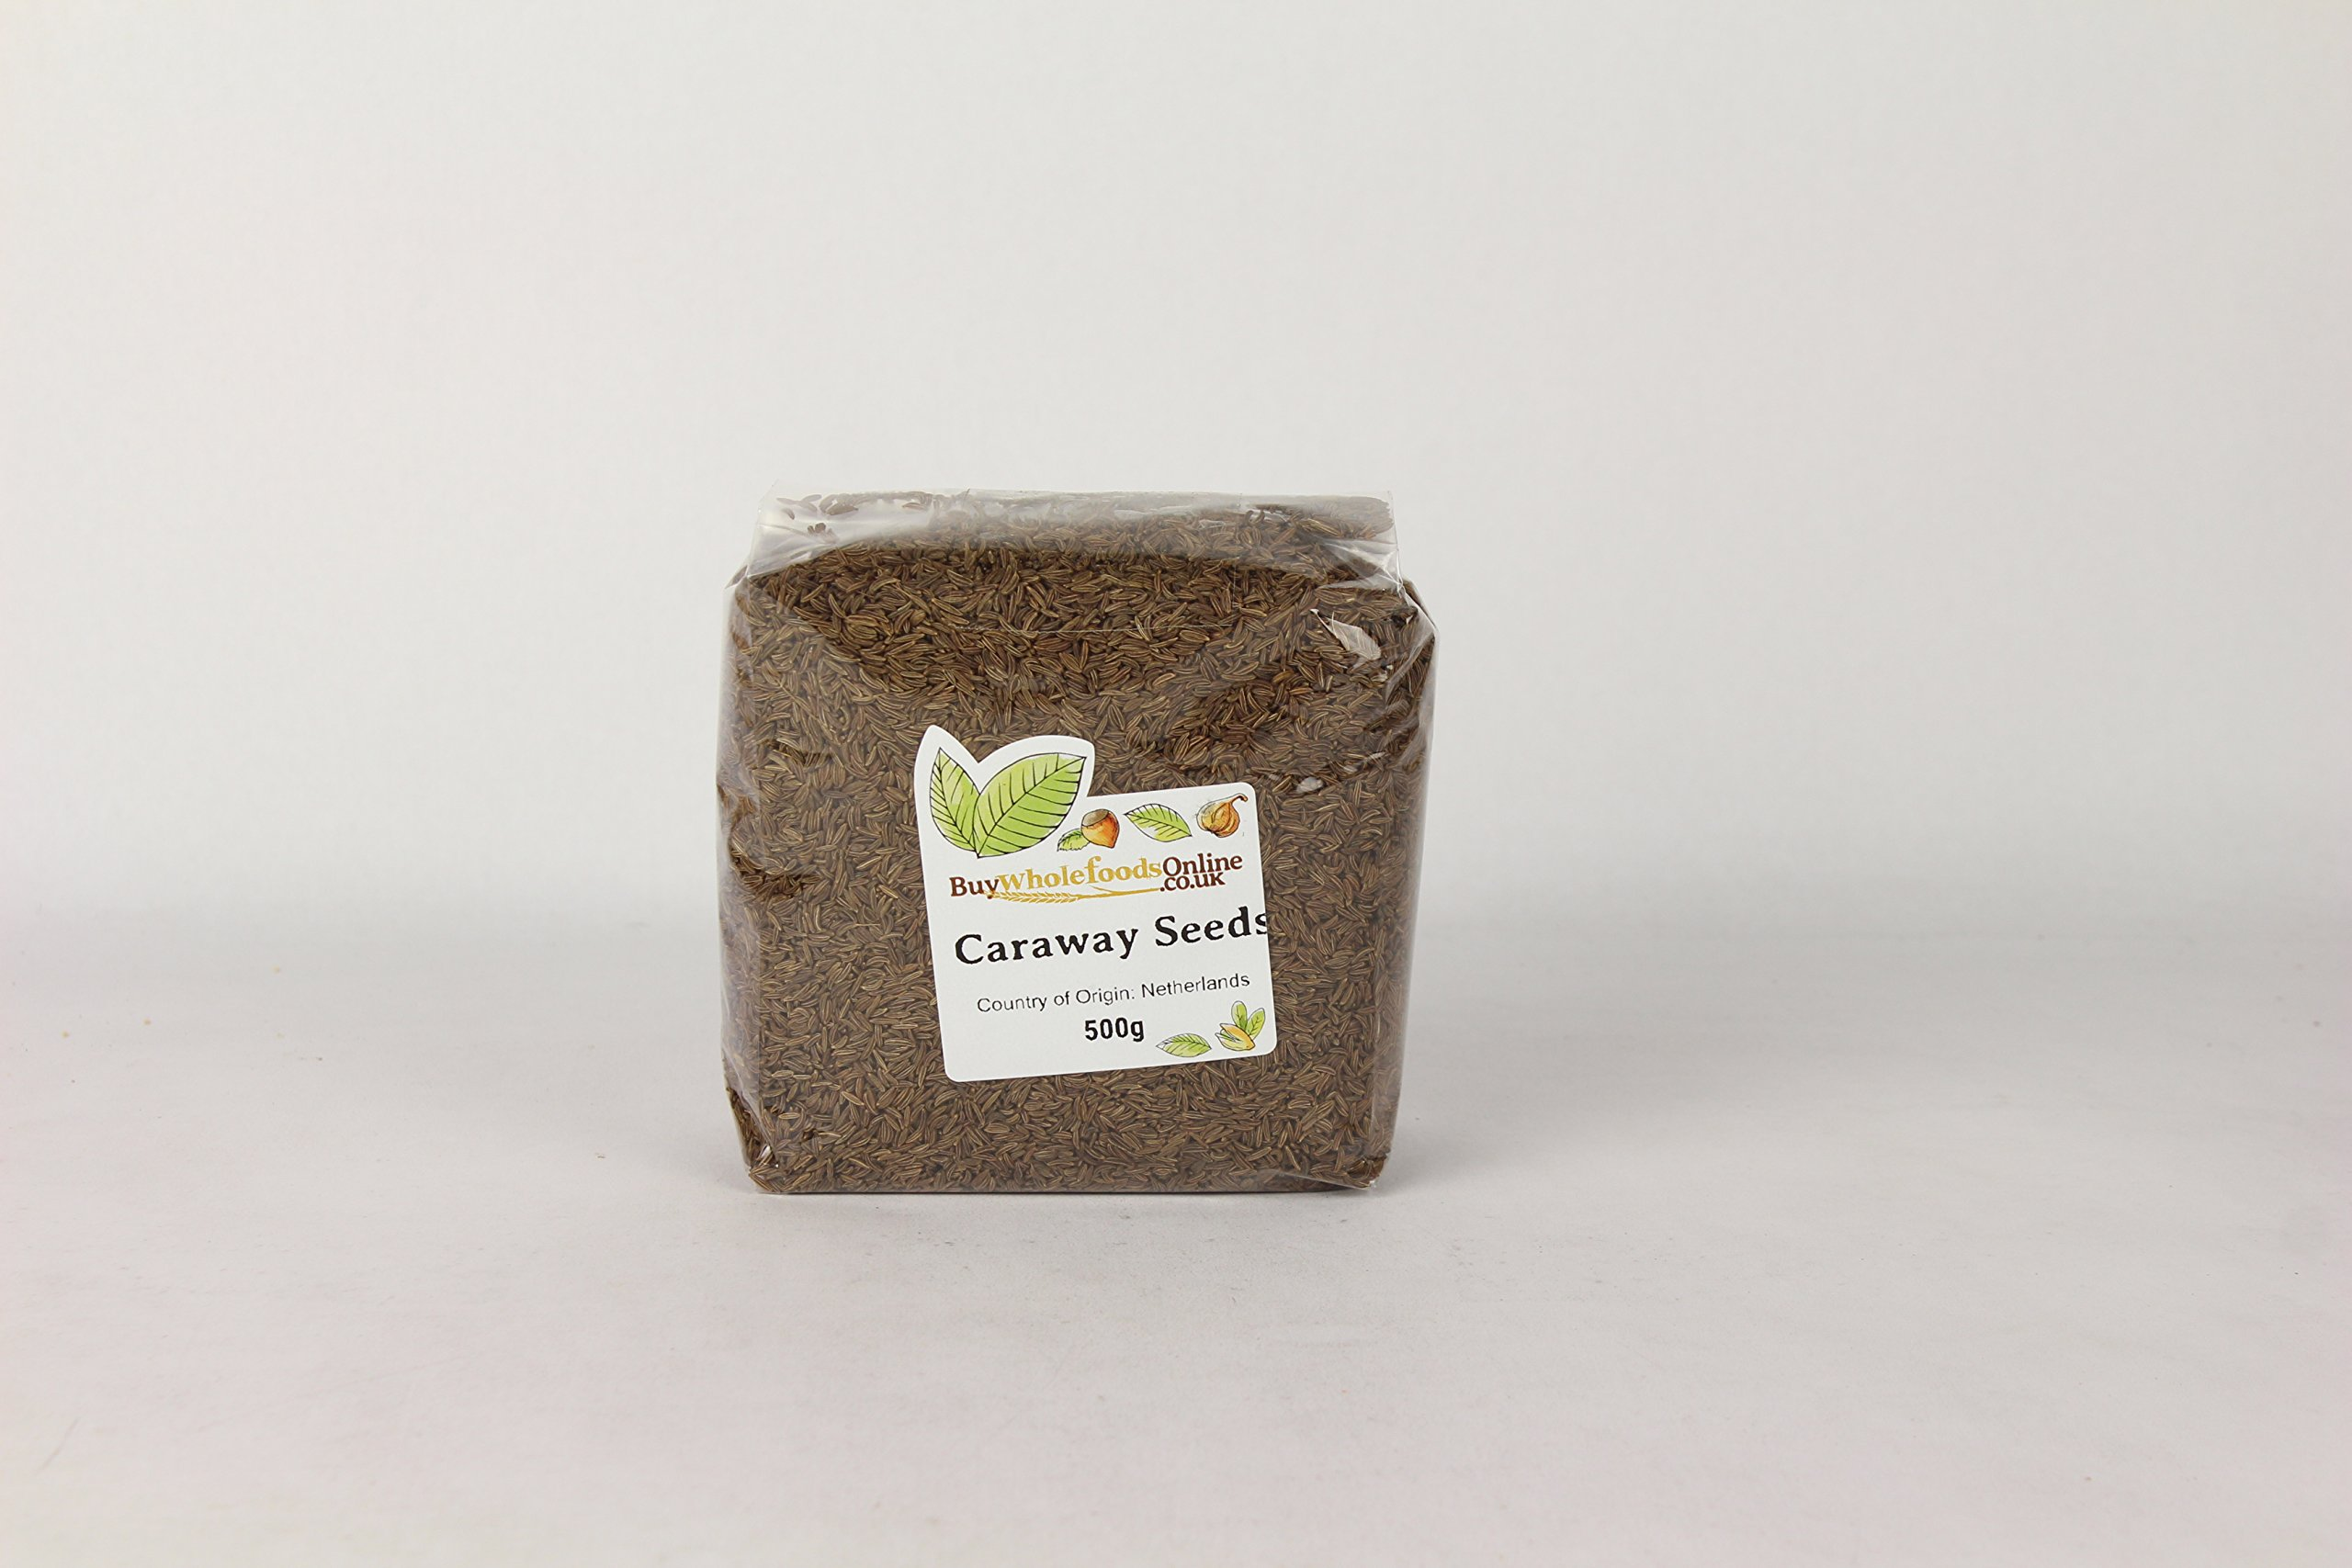 Buy Whole Foods Caraway Seeds 500 g